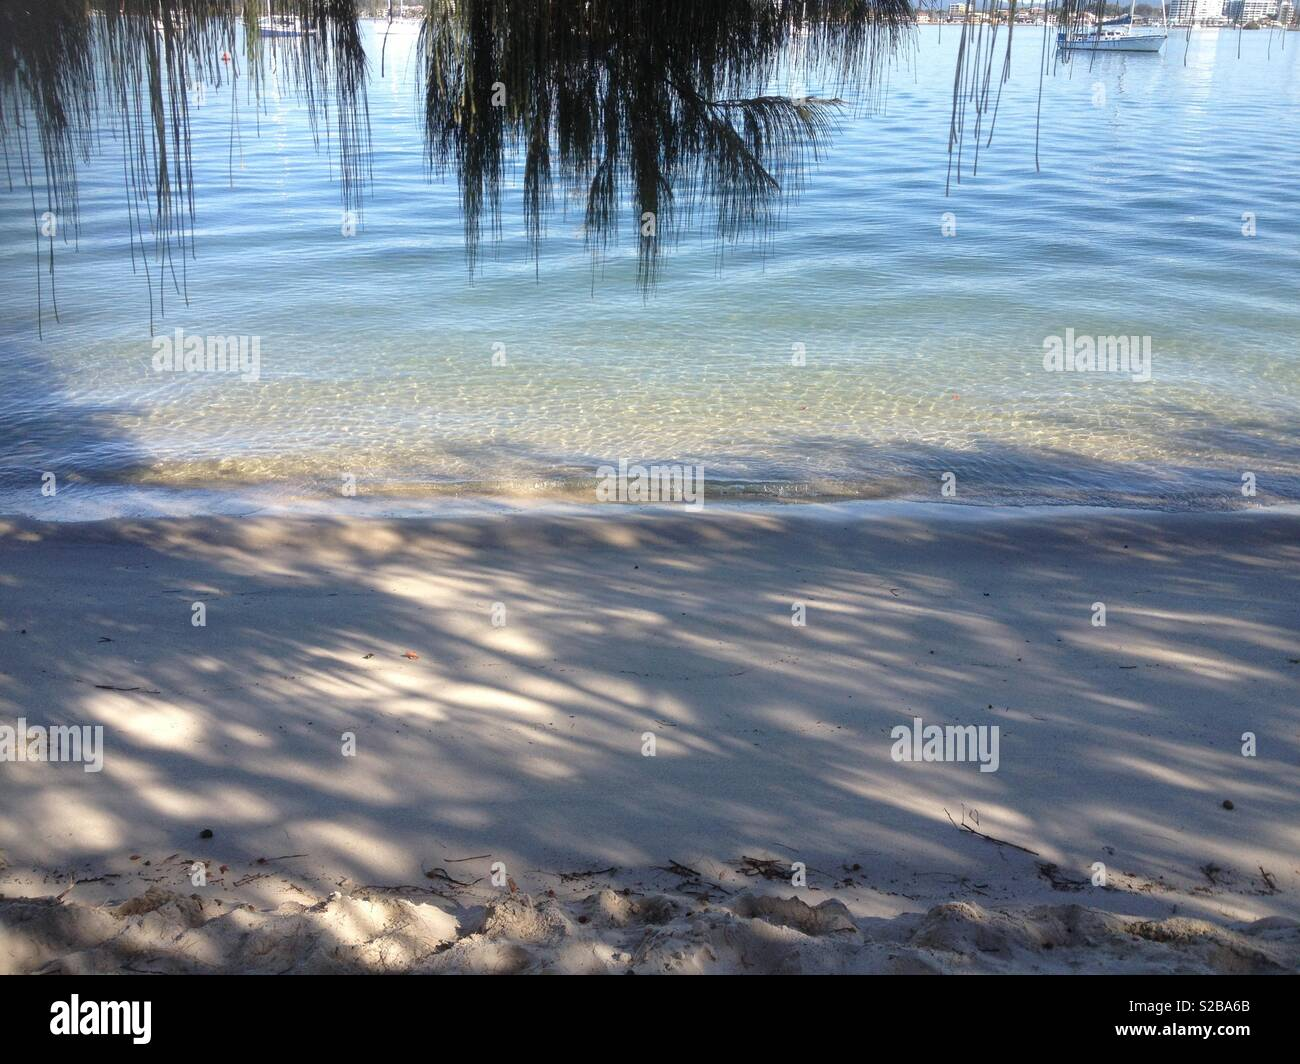 Tranquil, shaded beach with gentle waves and flat, calm blue water - Stock Image